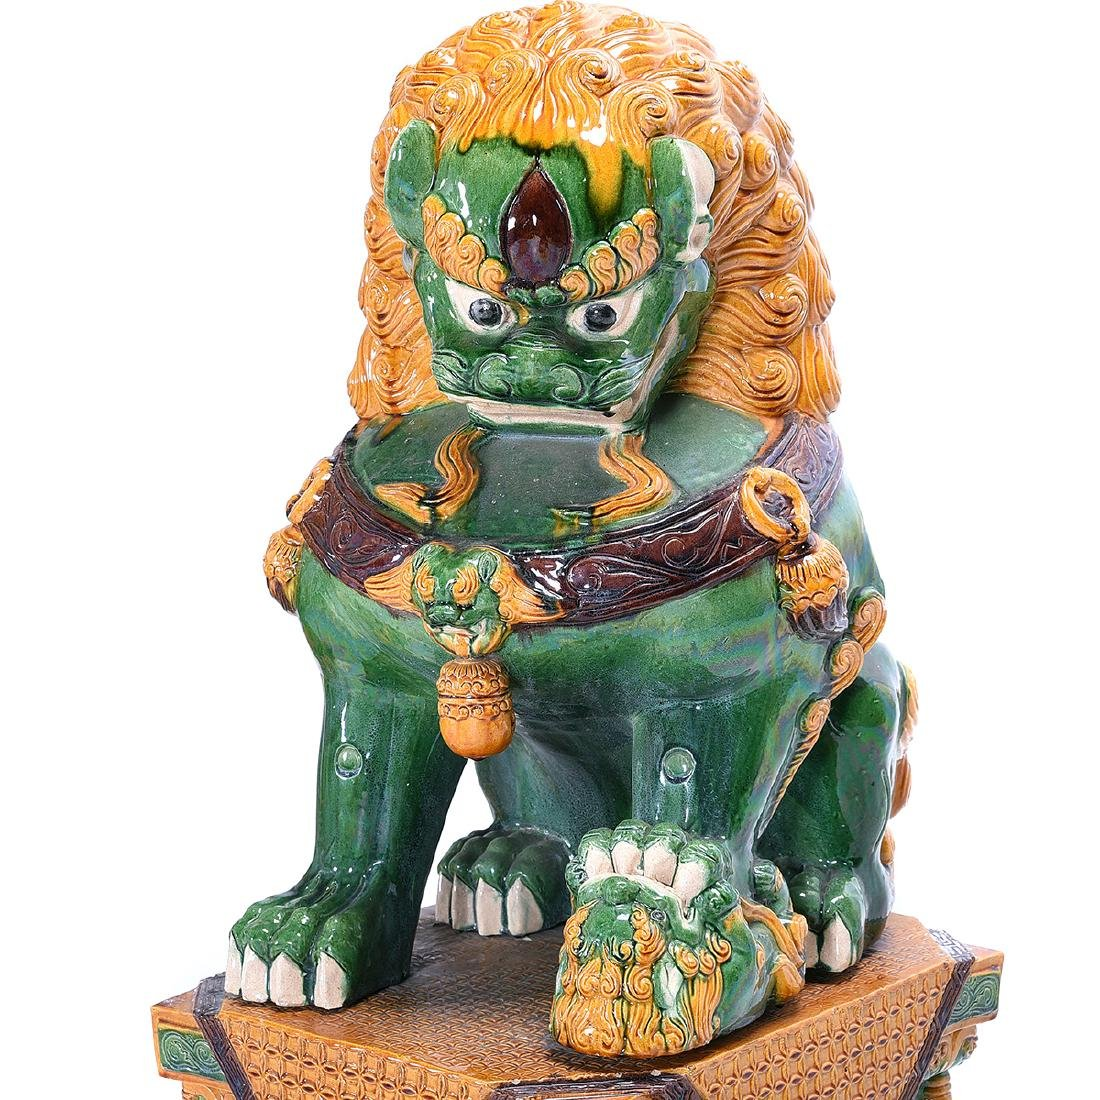 Pair of Massive Glazed Ceramic Guardian Lions - 6